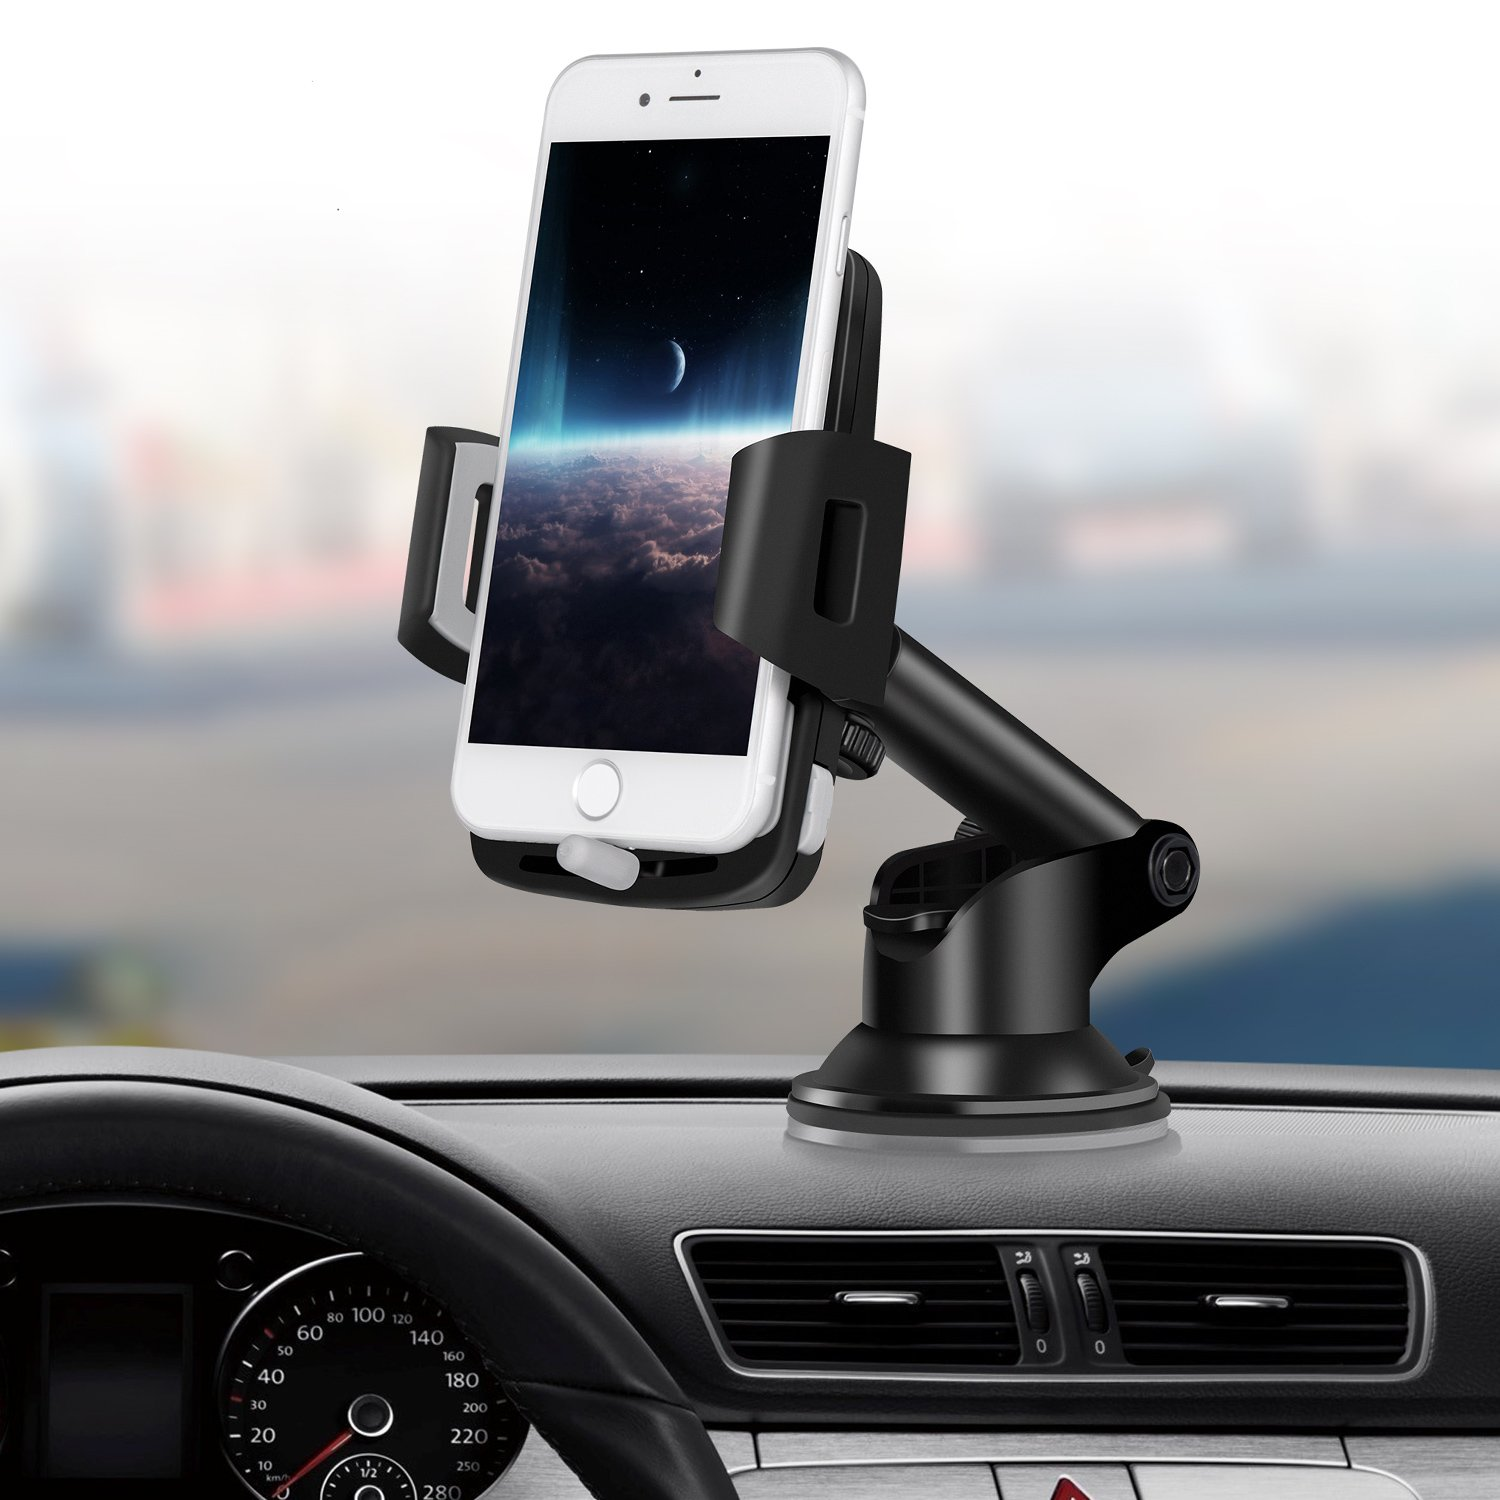 Car Mount, Upgraded Cell Phone Holder for Car Dashboard Windshield Universal Cell Phone Mount with Strong Sticky Suction Cup for iPhone X 8 7 6S 6 Samsung Galaxy S10 S9 S8 S7 S6 HTC LG Google GPS